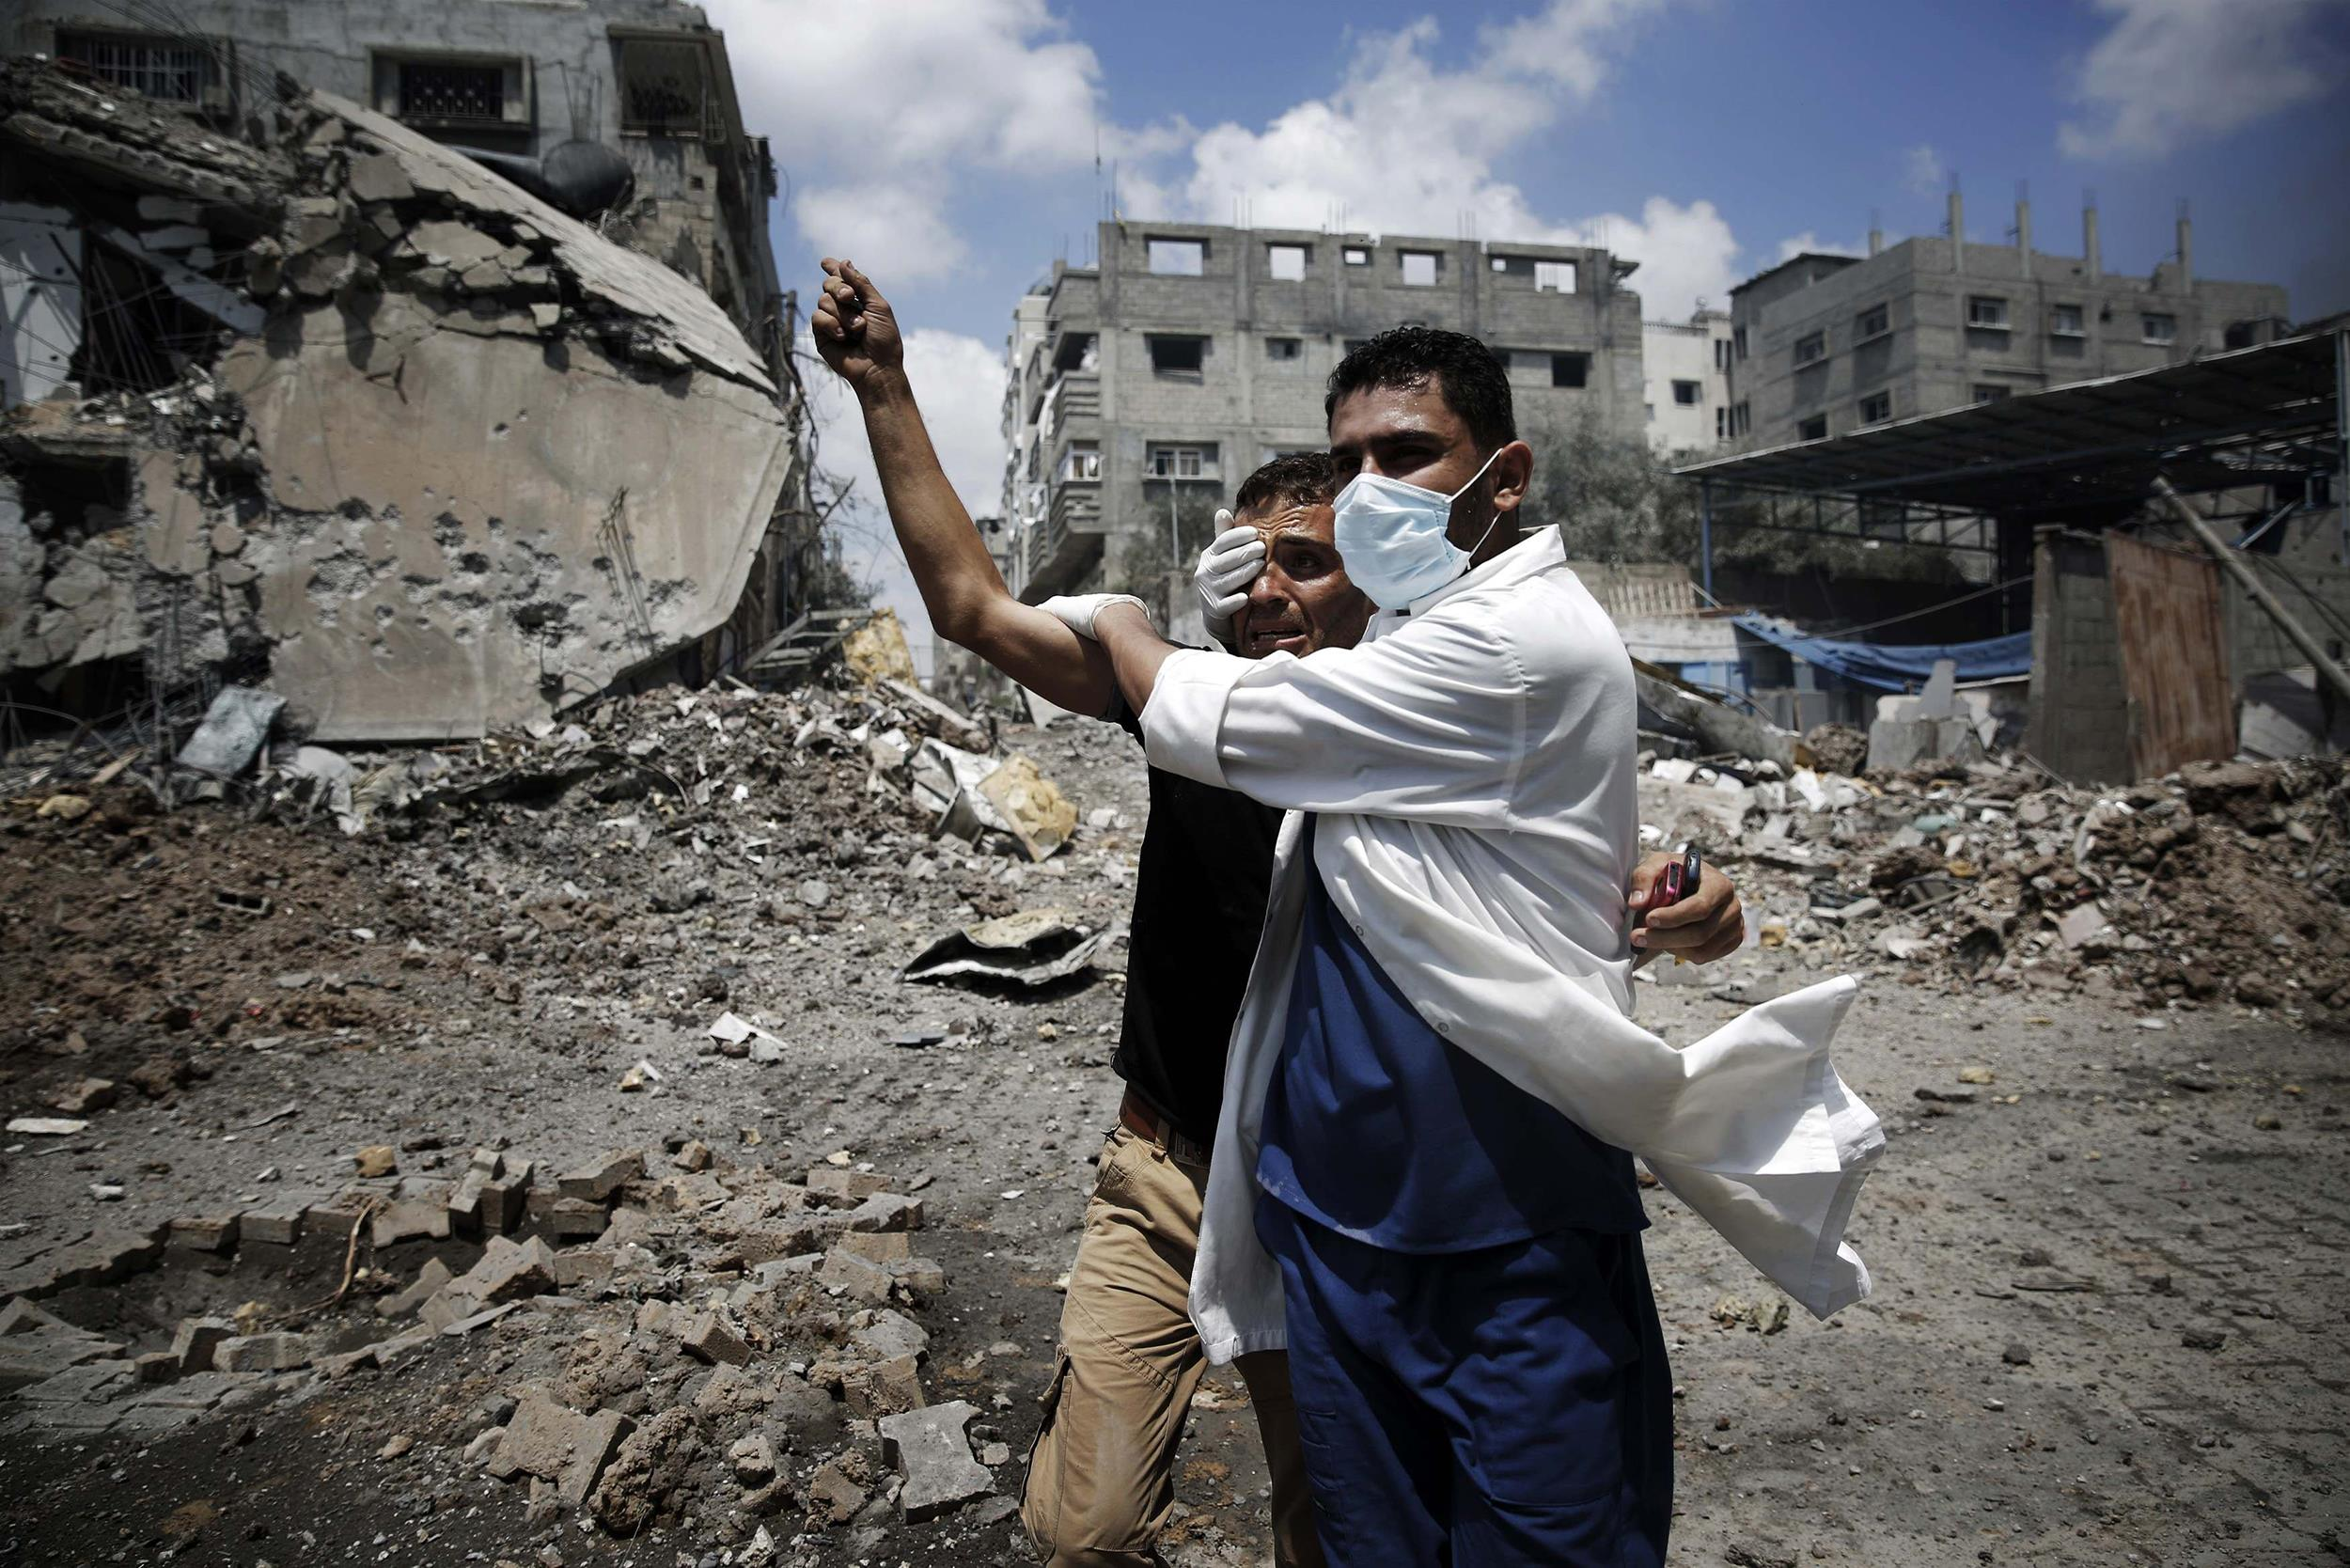 Image: A medic helps a Palestinian in the Shejaia neighbourhood, which was heavily shelled by Israel during fighting, in Gaza City